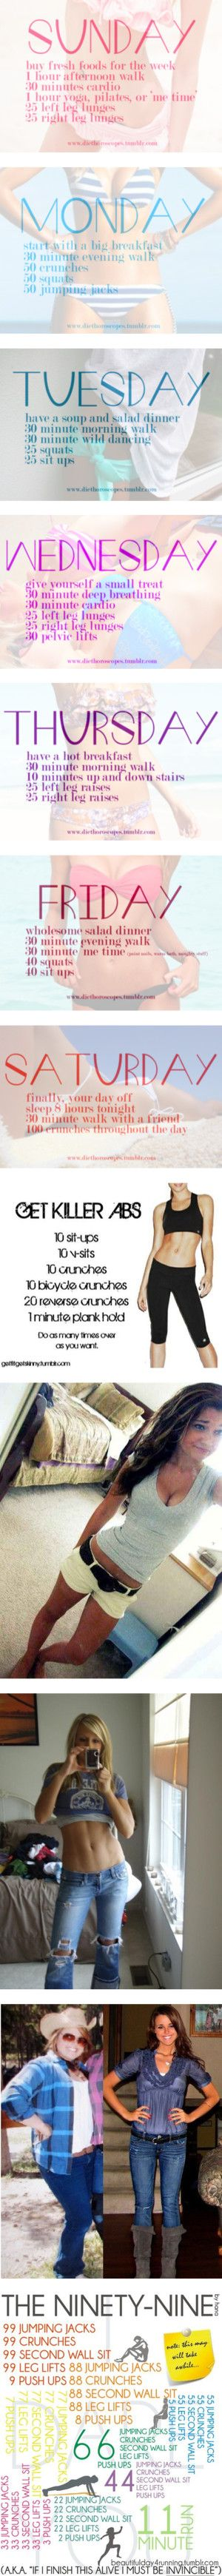 weekly meal and workout ideas.